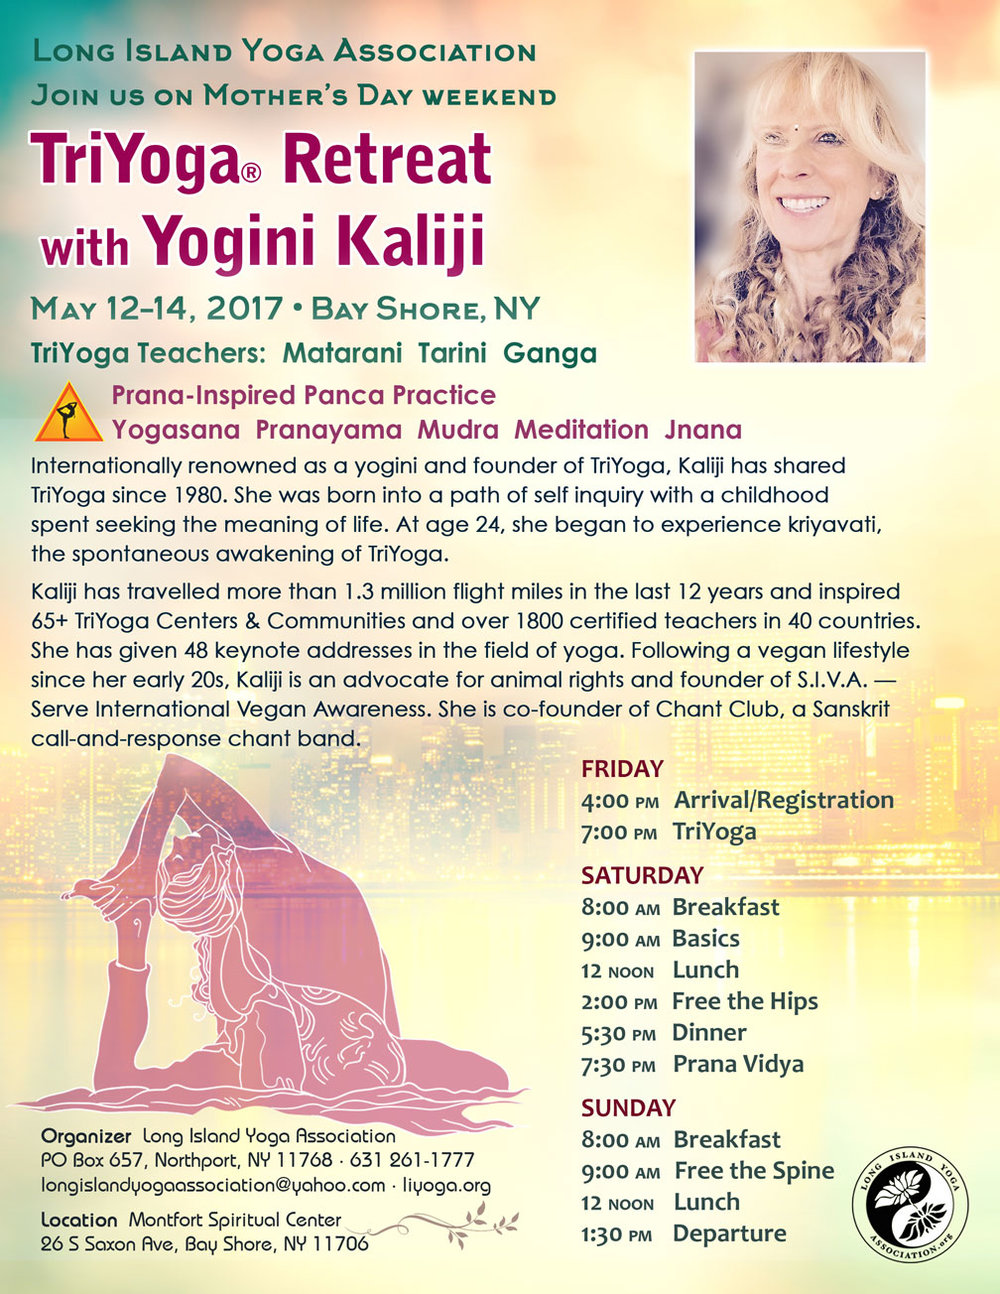 TriYoga_LongIsland_may2017_web-2.jpg